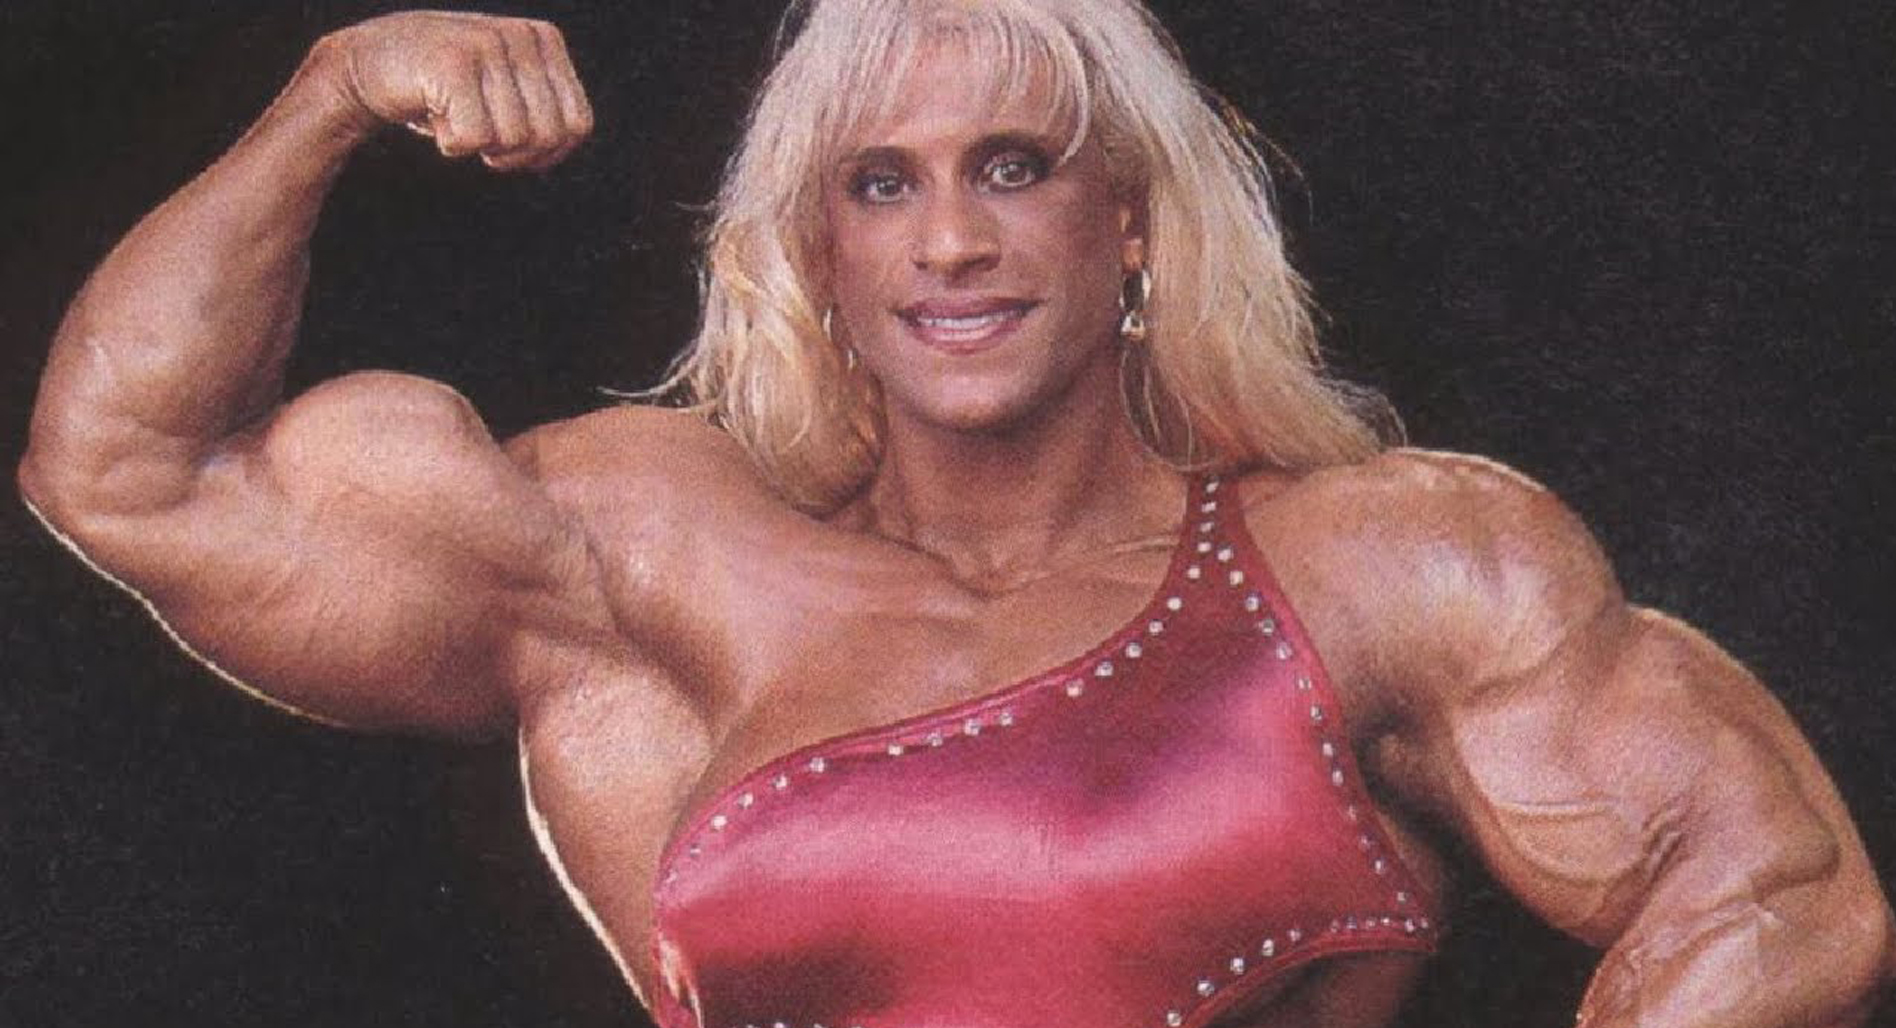 SHOCKING female bodybuilders